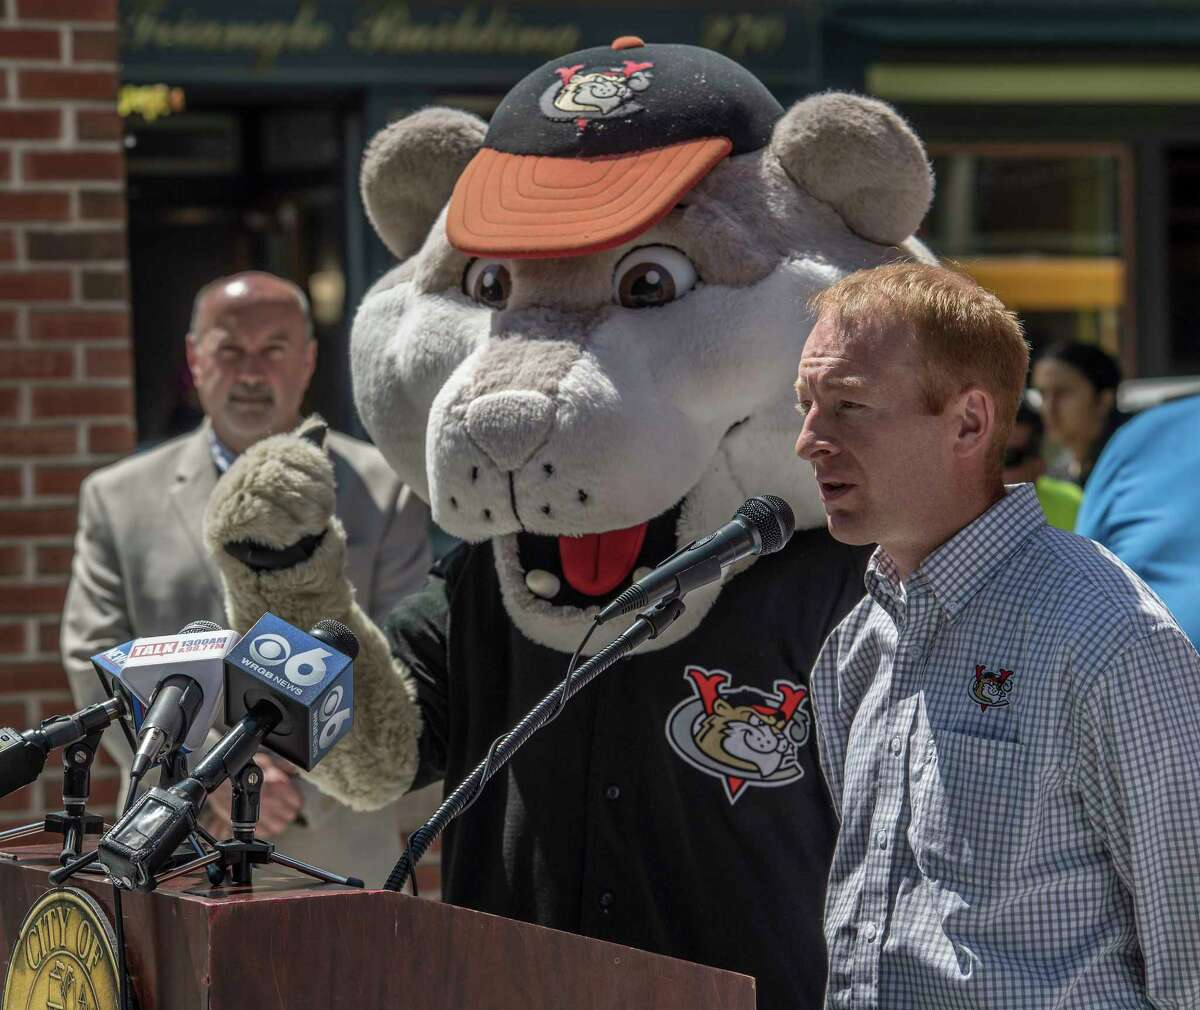 Matt Callahan, general manager of the Tri-City ValleyCats tells the gathering about the various events related to his baseball team that will occur during the summer months with a left-handed assist from Southpaw the team mascotat a press briefing Monday May 29, 2018 in Troy, N.Y. (Skip Dickstein/Times Union)